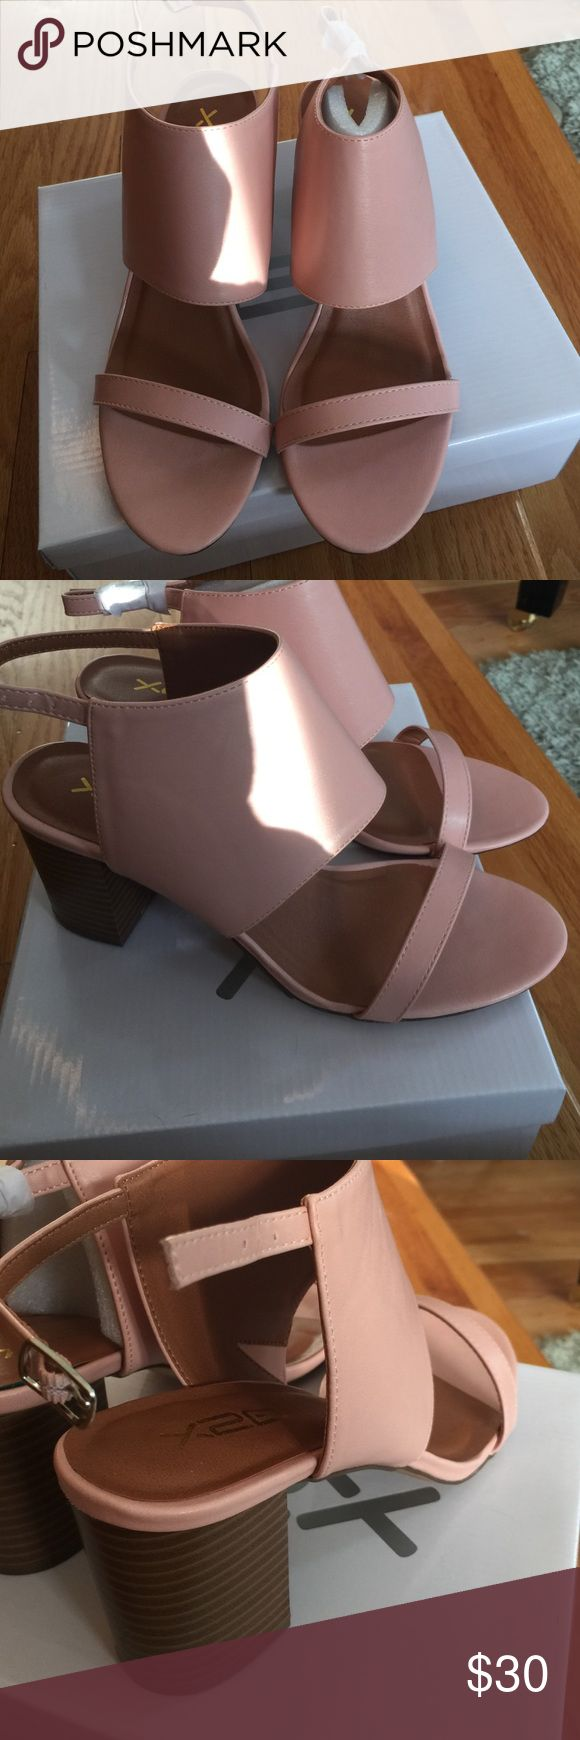 "Pink heeled sandals New never worn still in original box and packing. Size 8.5. 3"" heel blush pink. Synthetic leather Shoes Sandals"